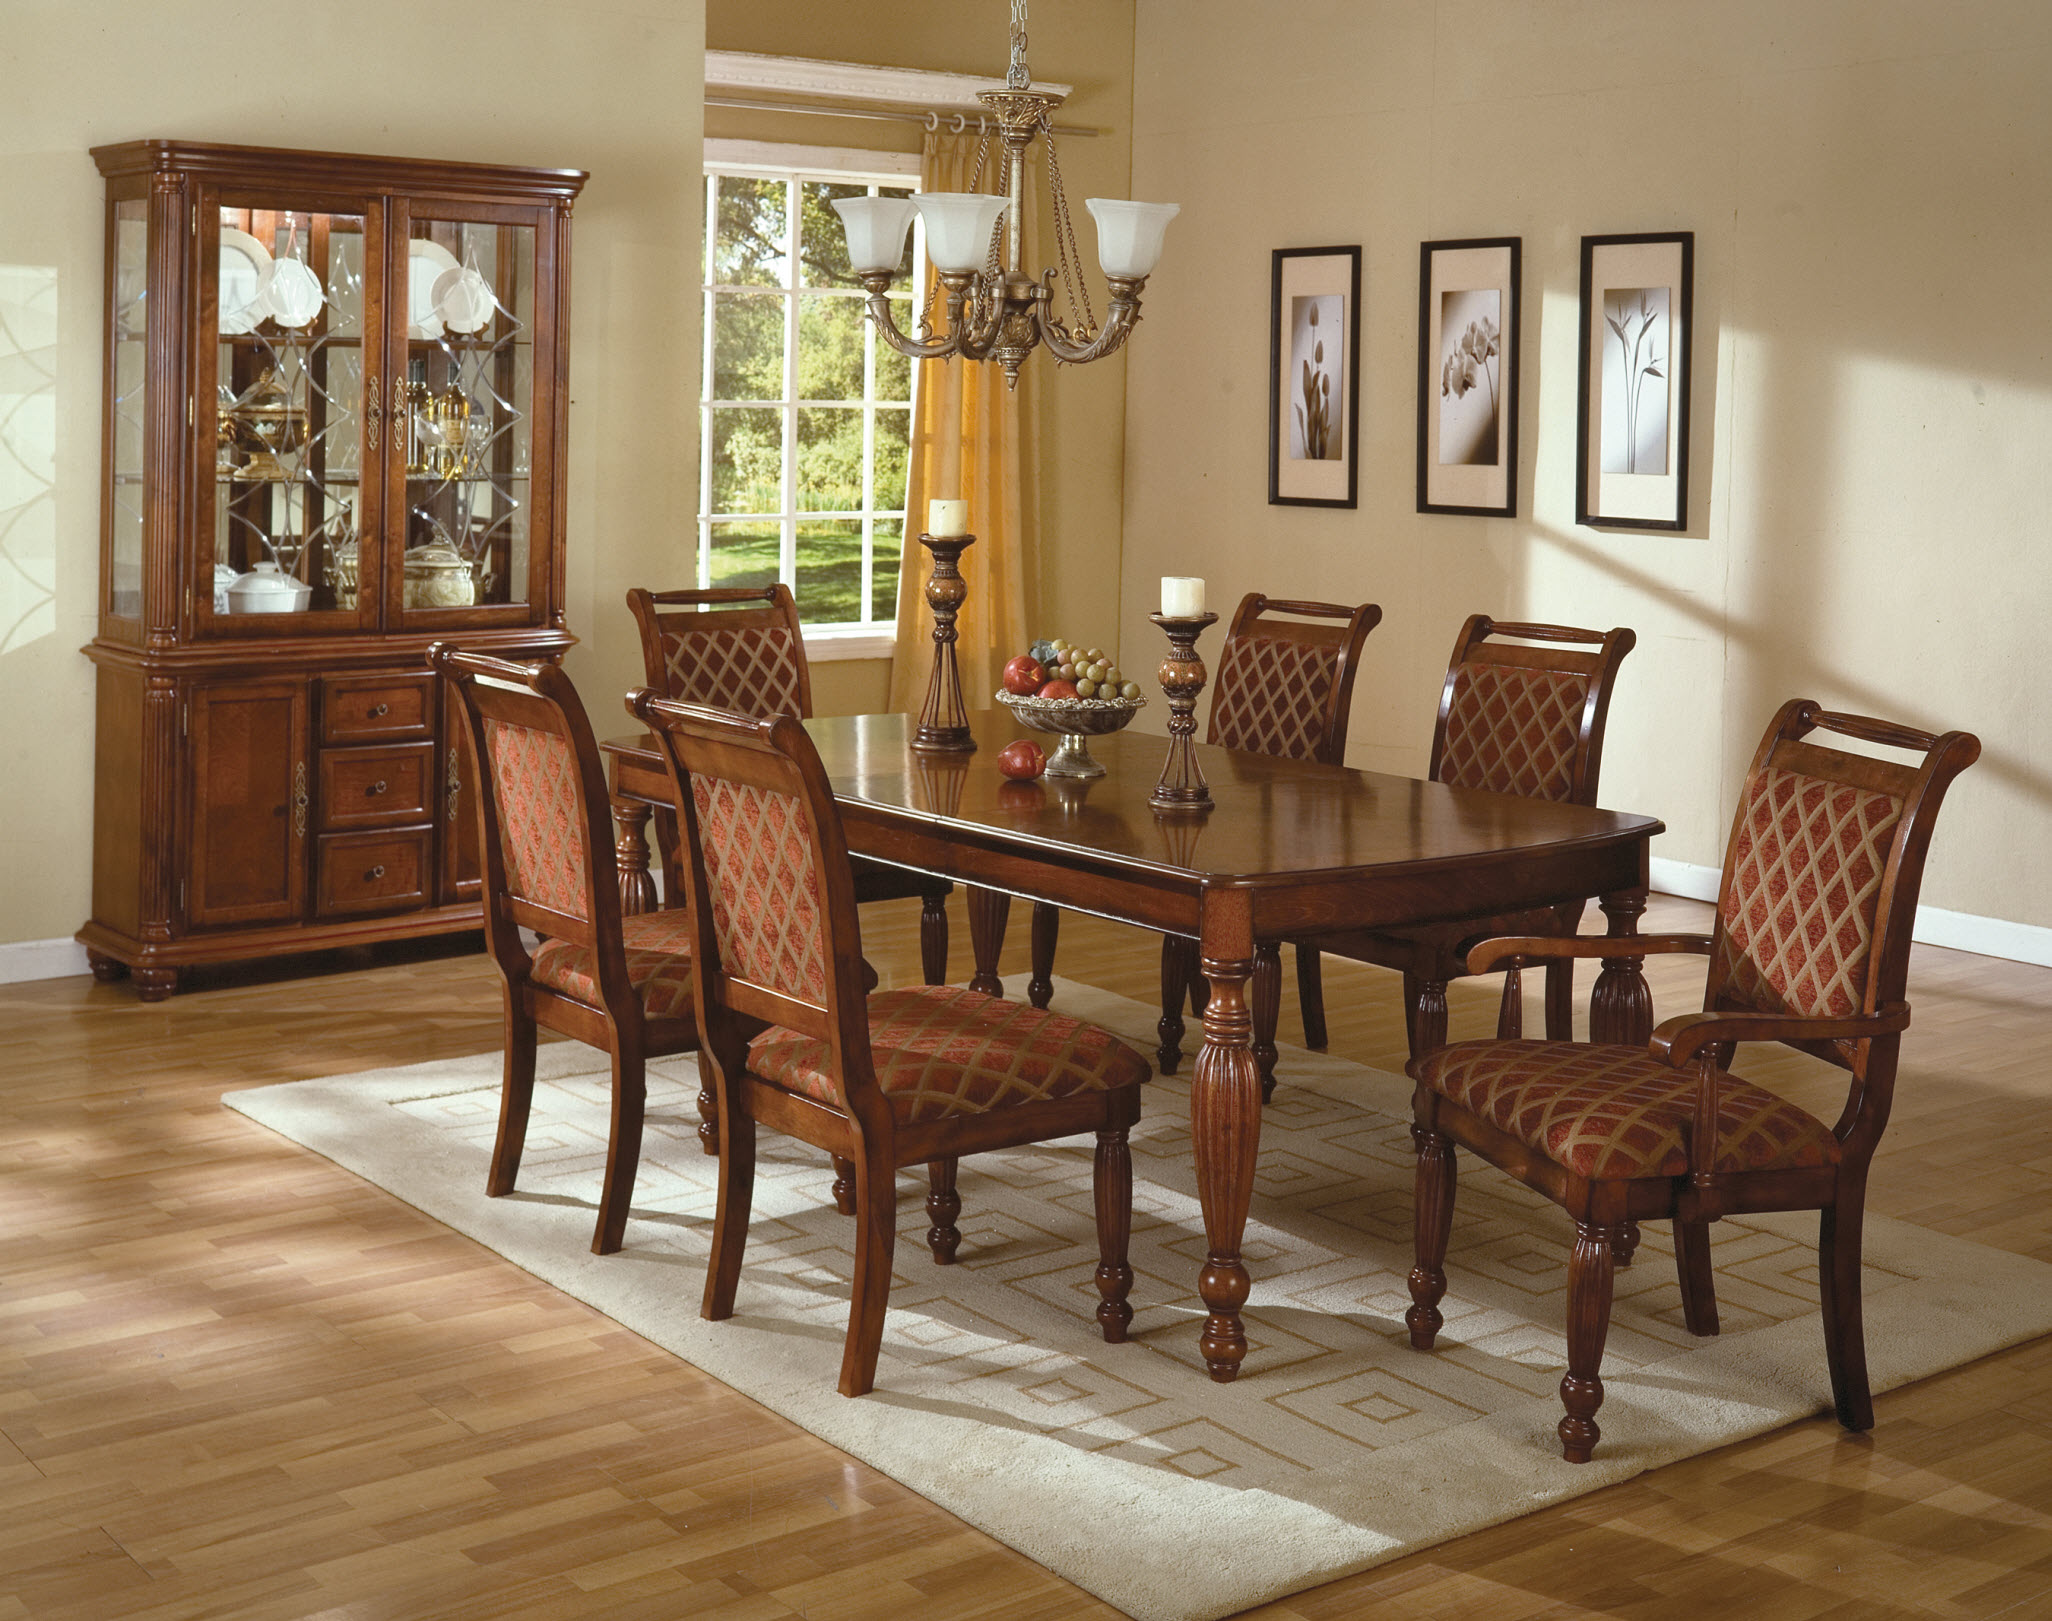 Fascinating Formal Dining Room Sets For 10 Photo Cragfont Buy